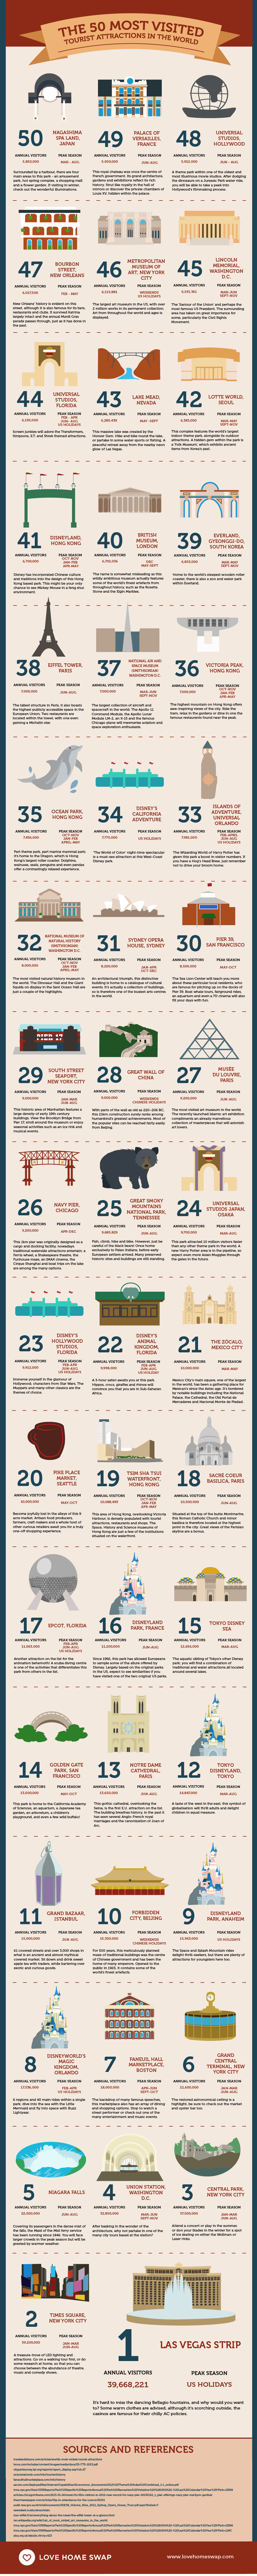 50 Most Visited Tourist Attractions